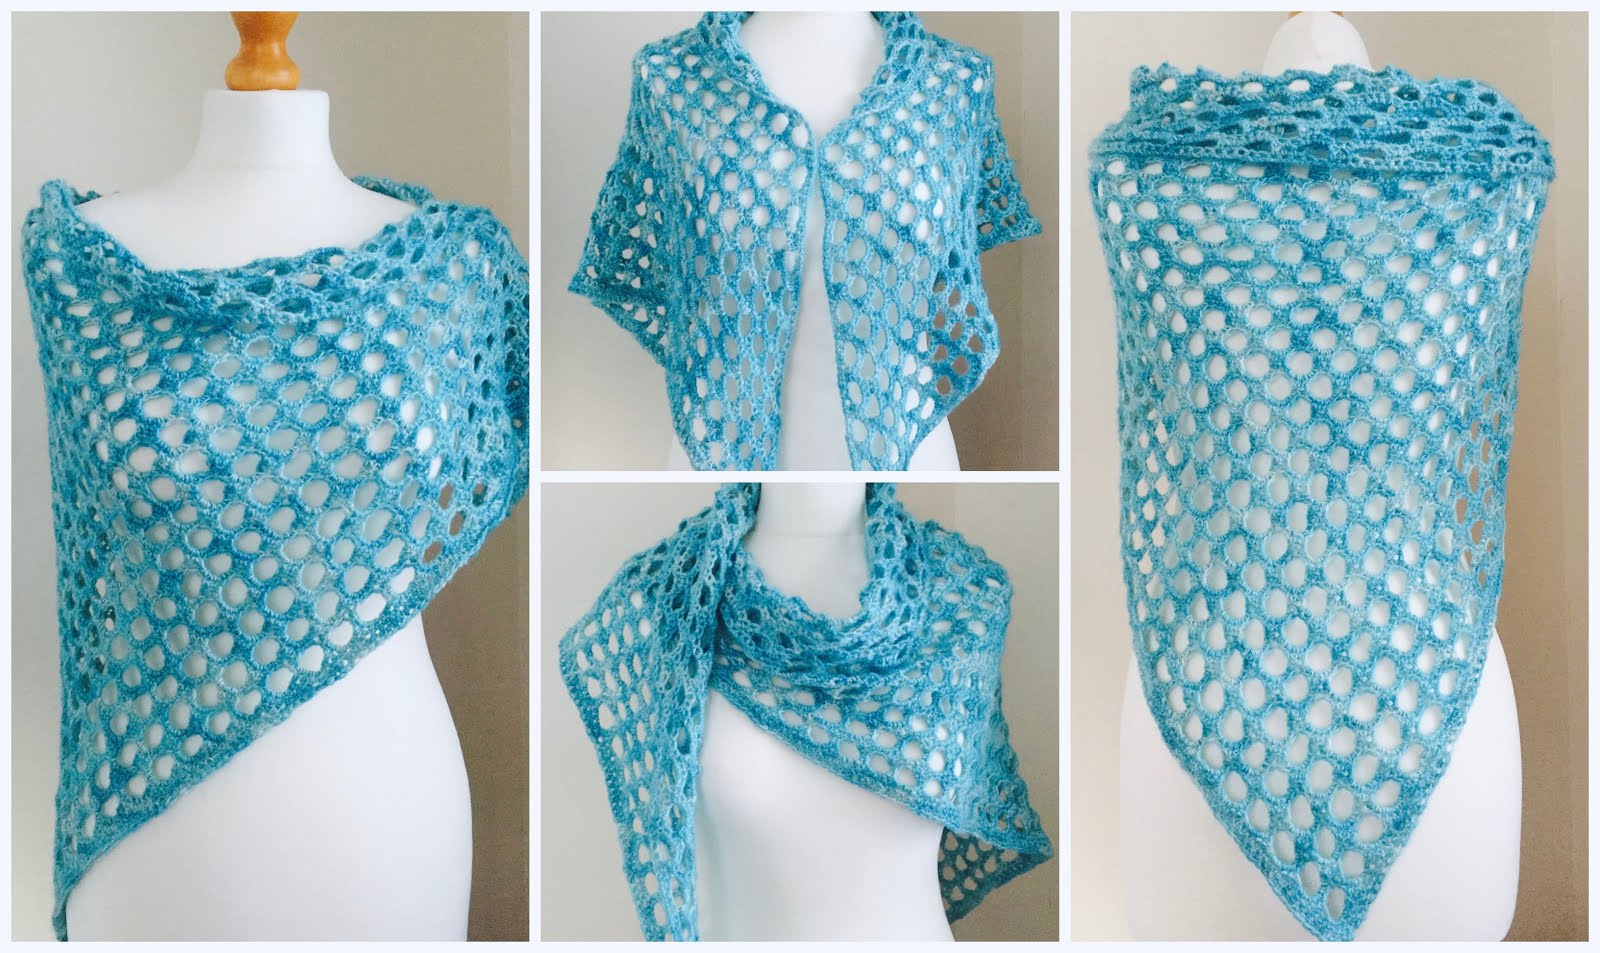 Crochet Shawls And Wraps Patterns Erieairfair